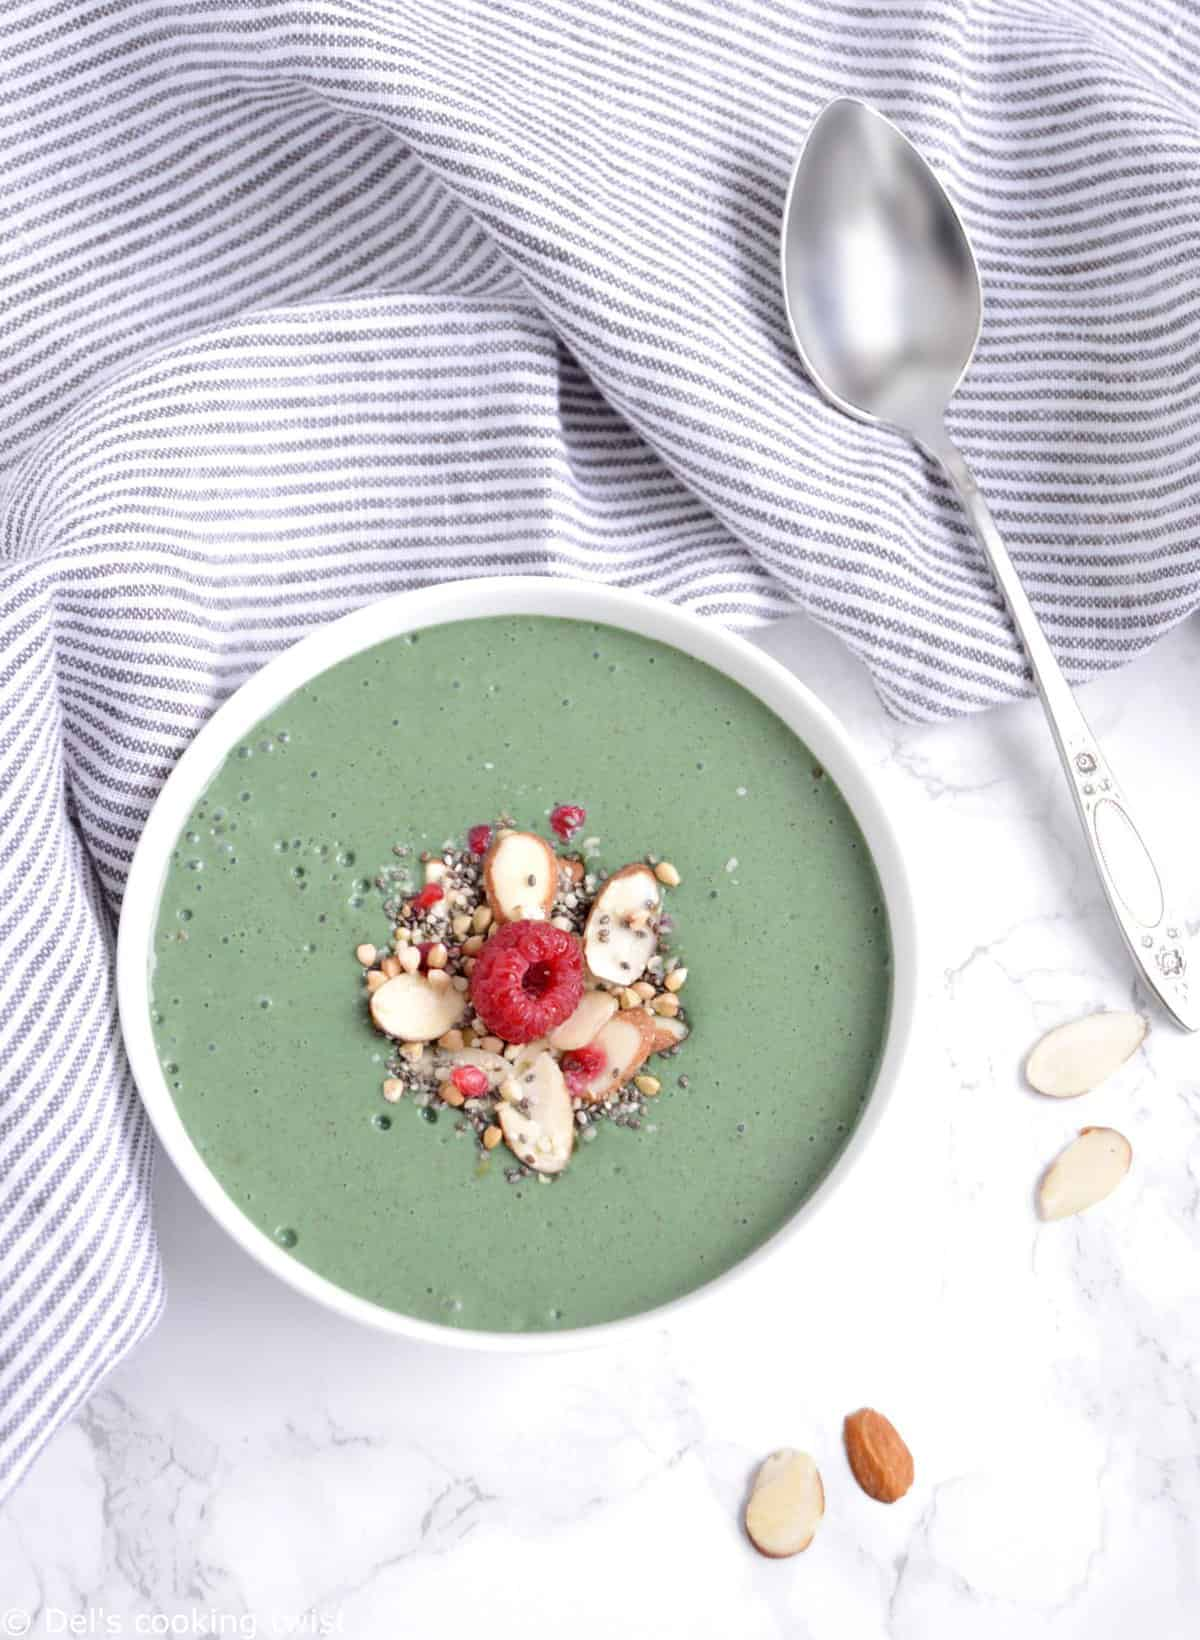 My favorite spirulina smoothie bowl